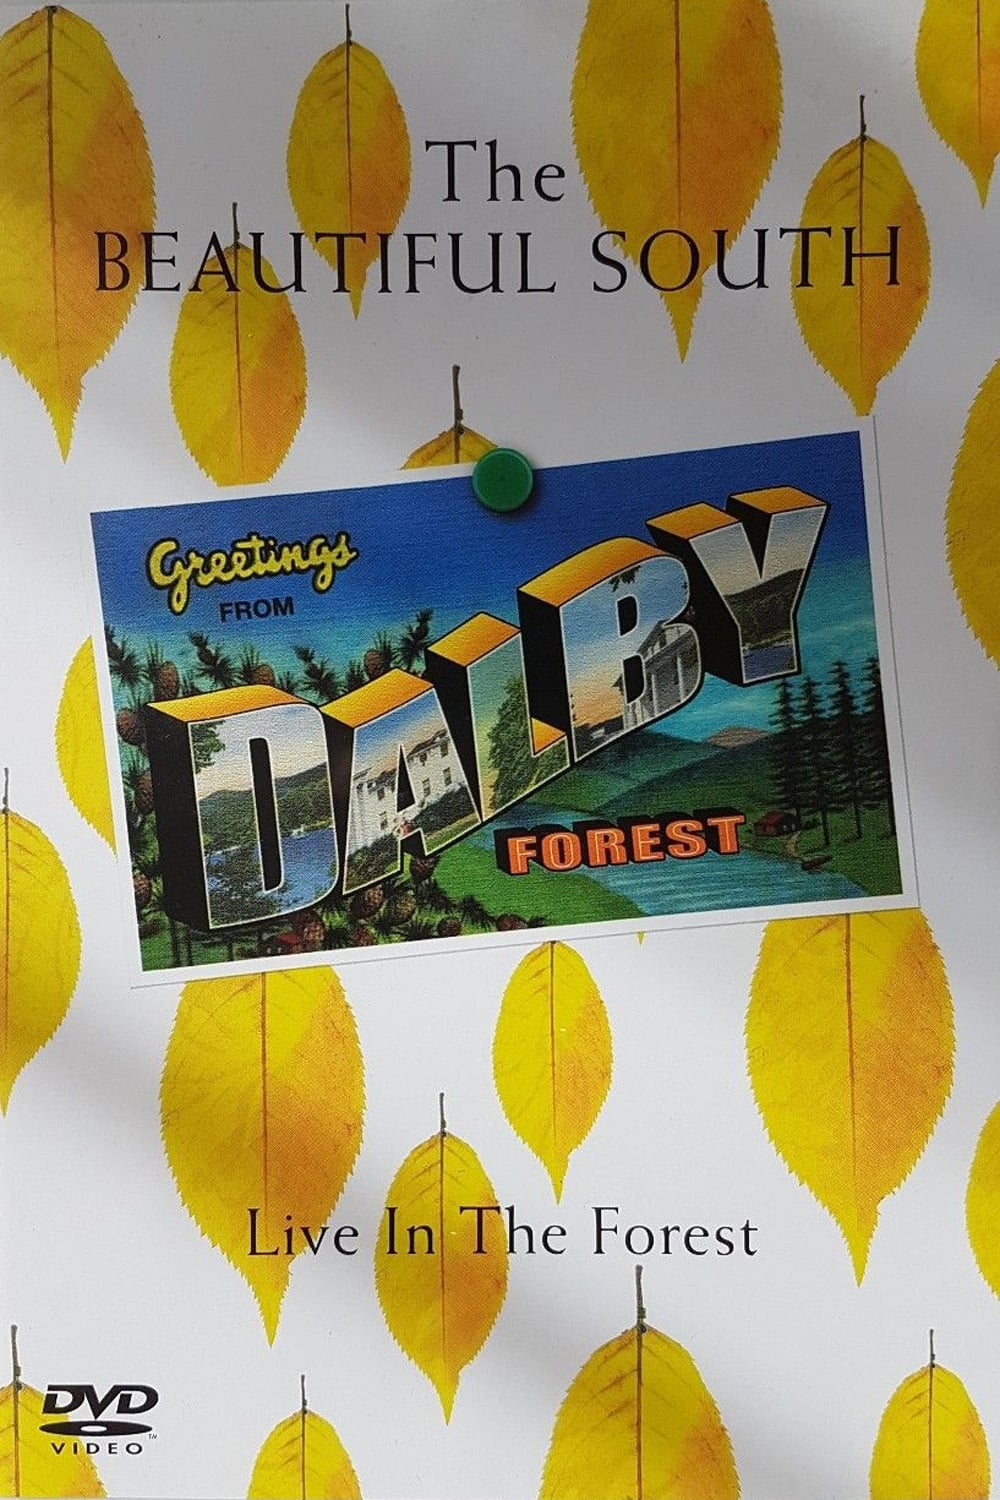 The Beautiful South: Live In The Forest (2006)